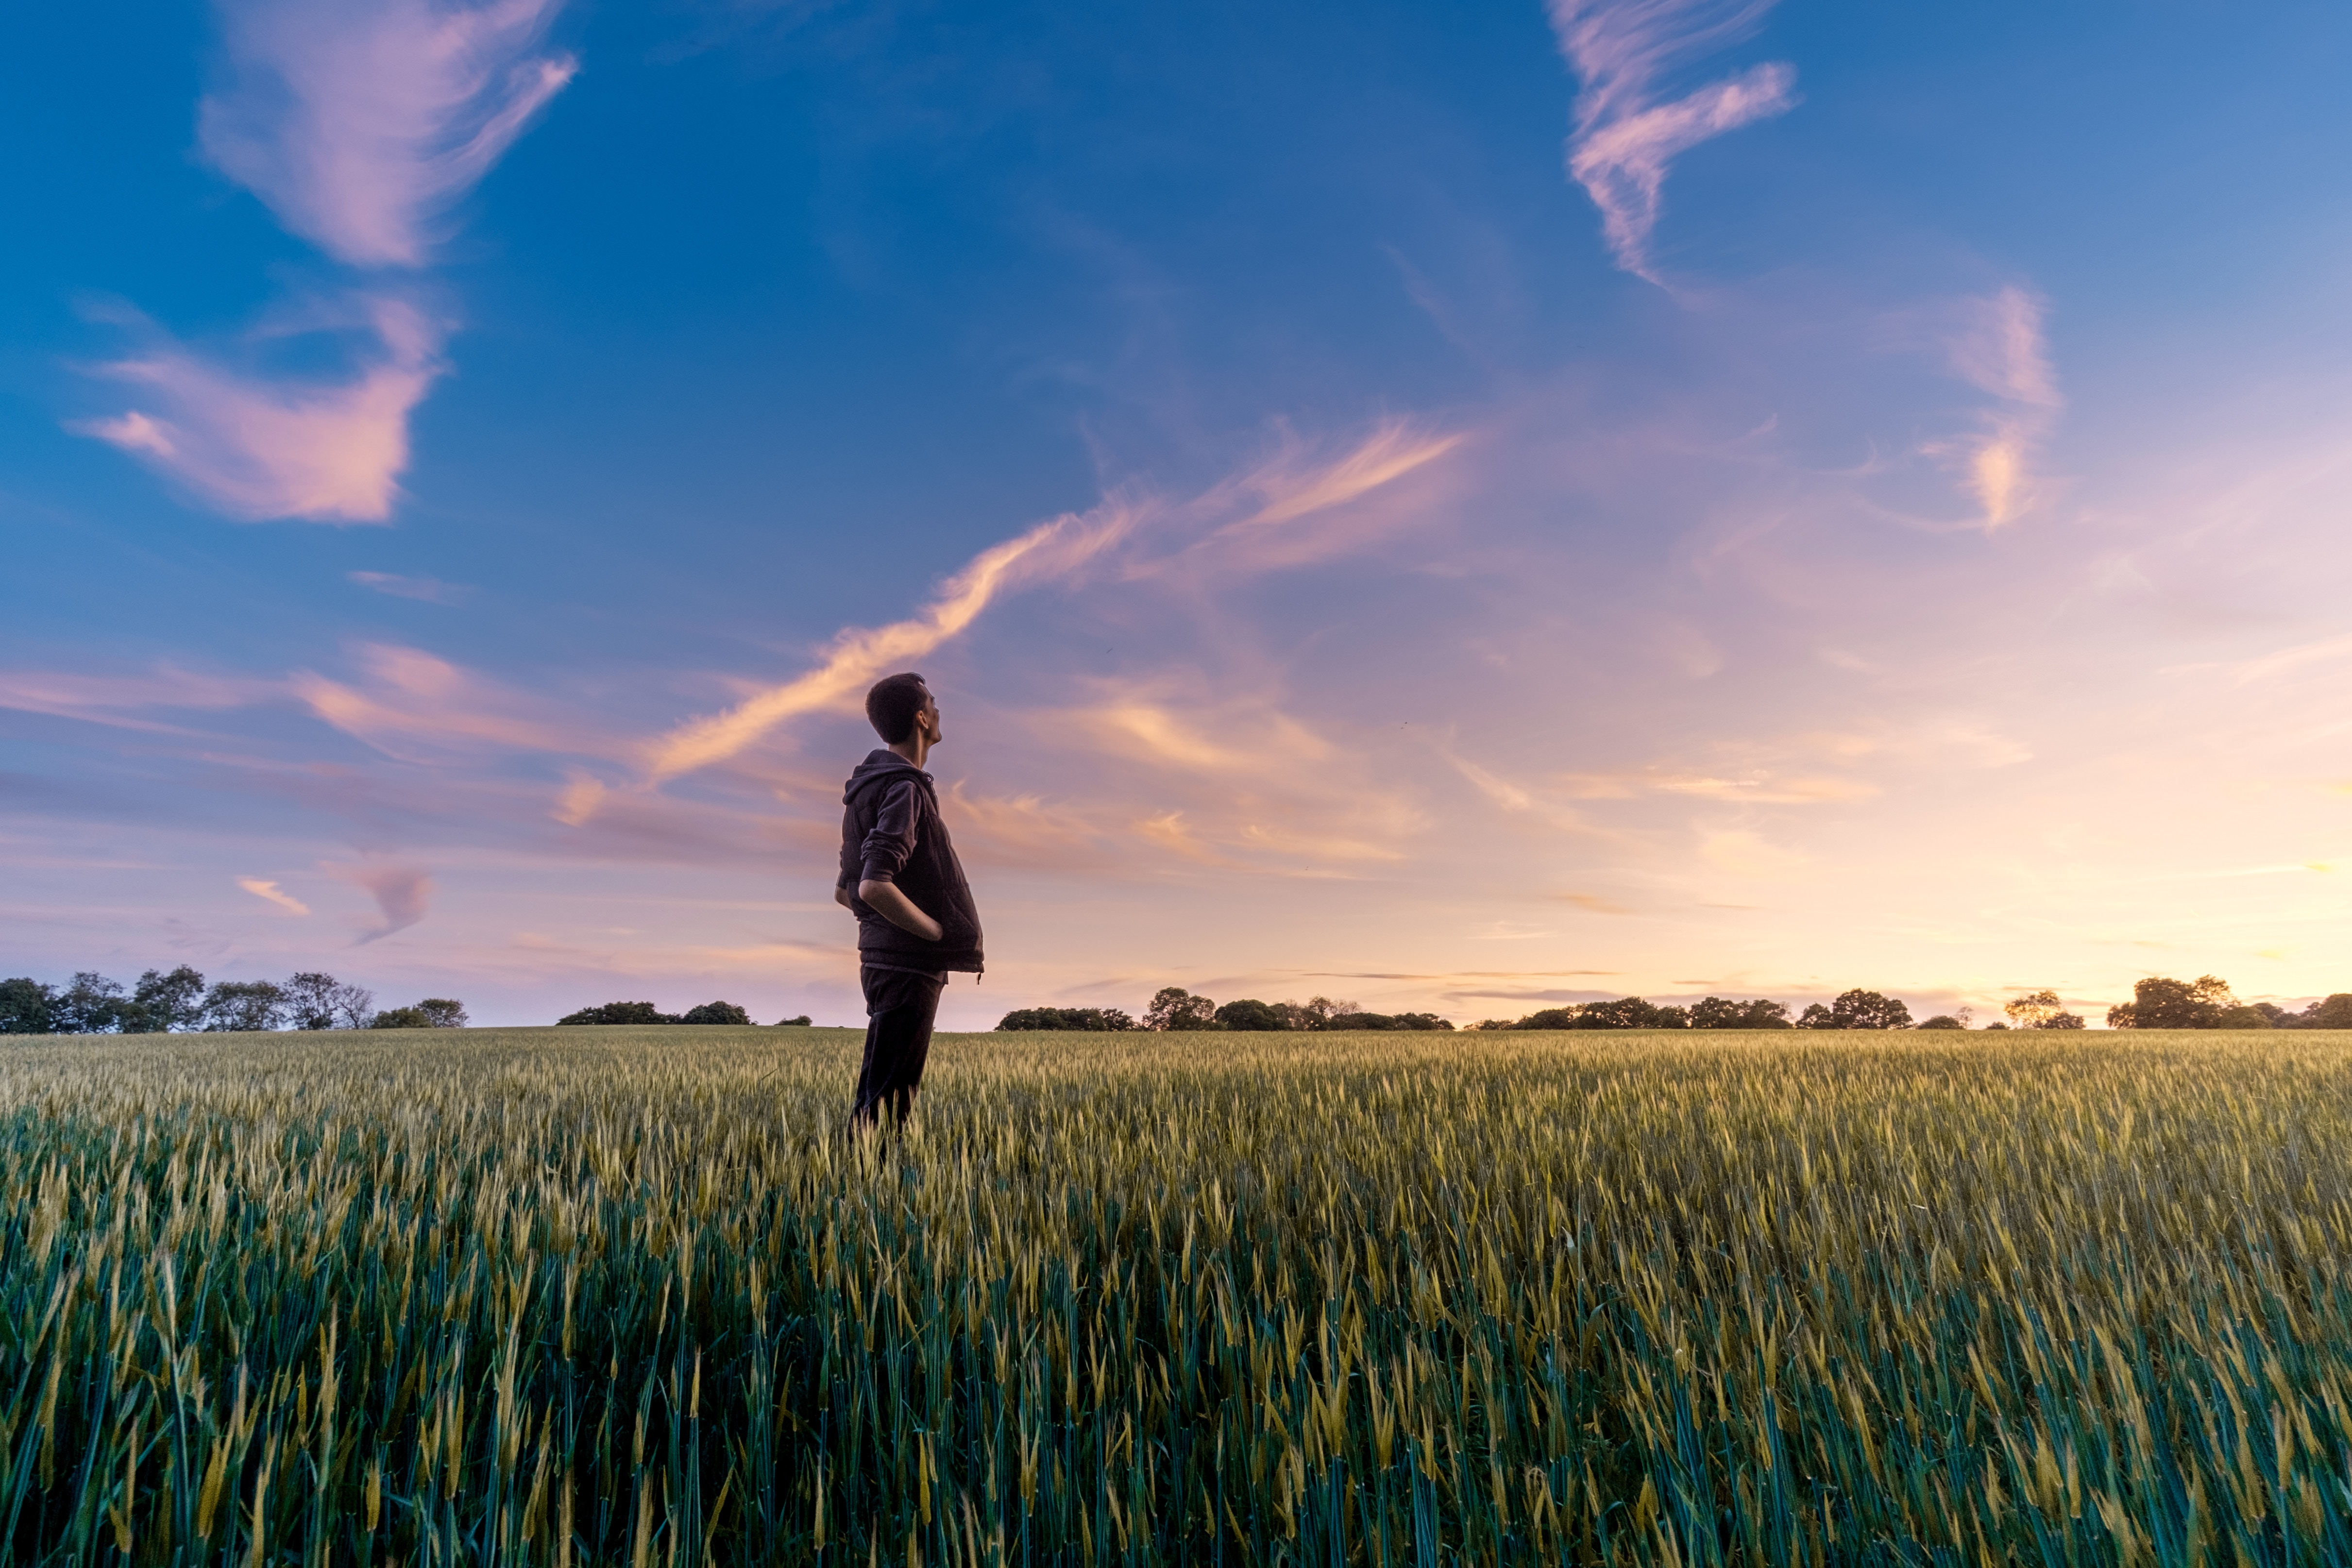 Man standing in field looking up at sky